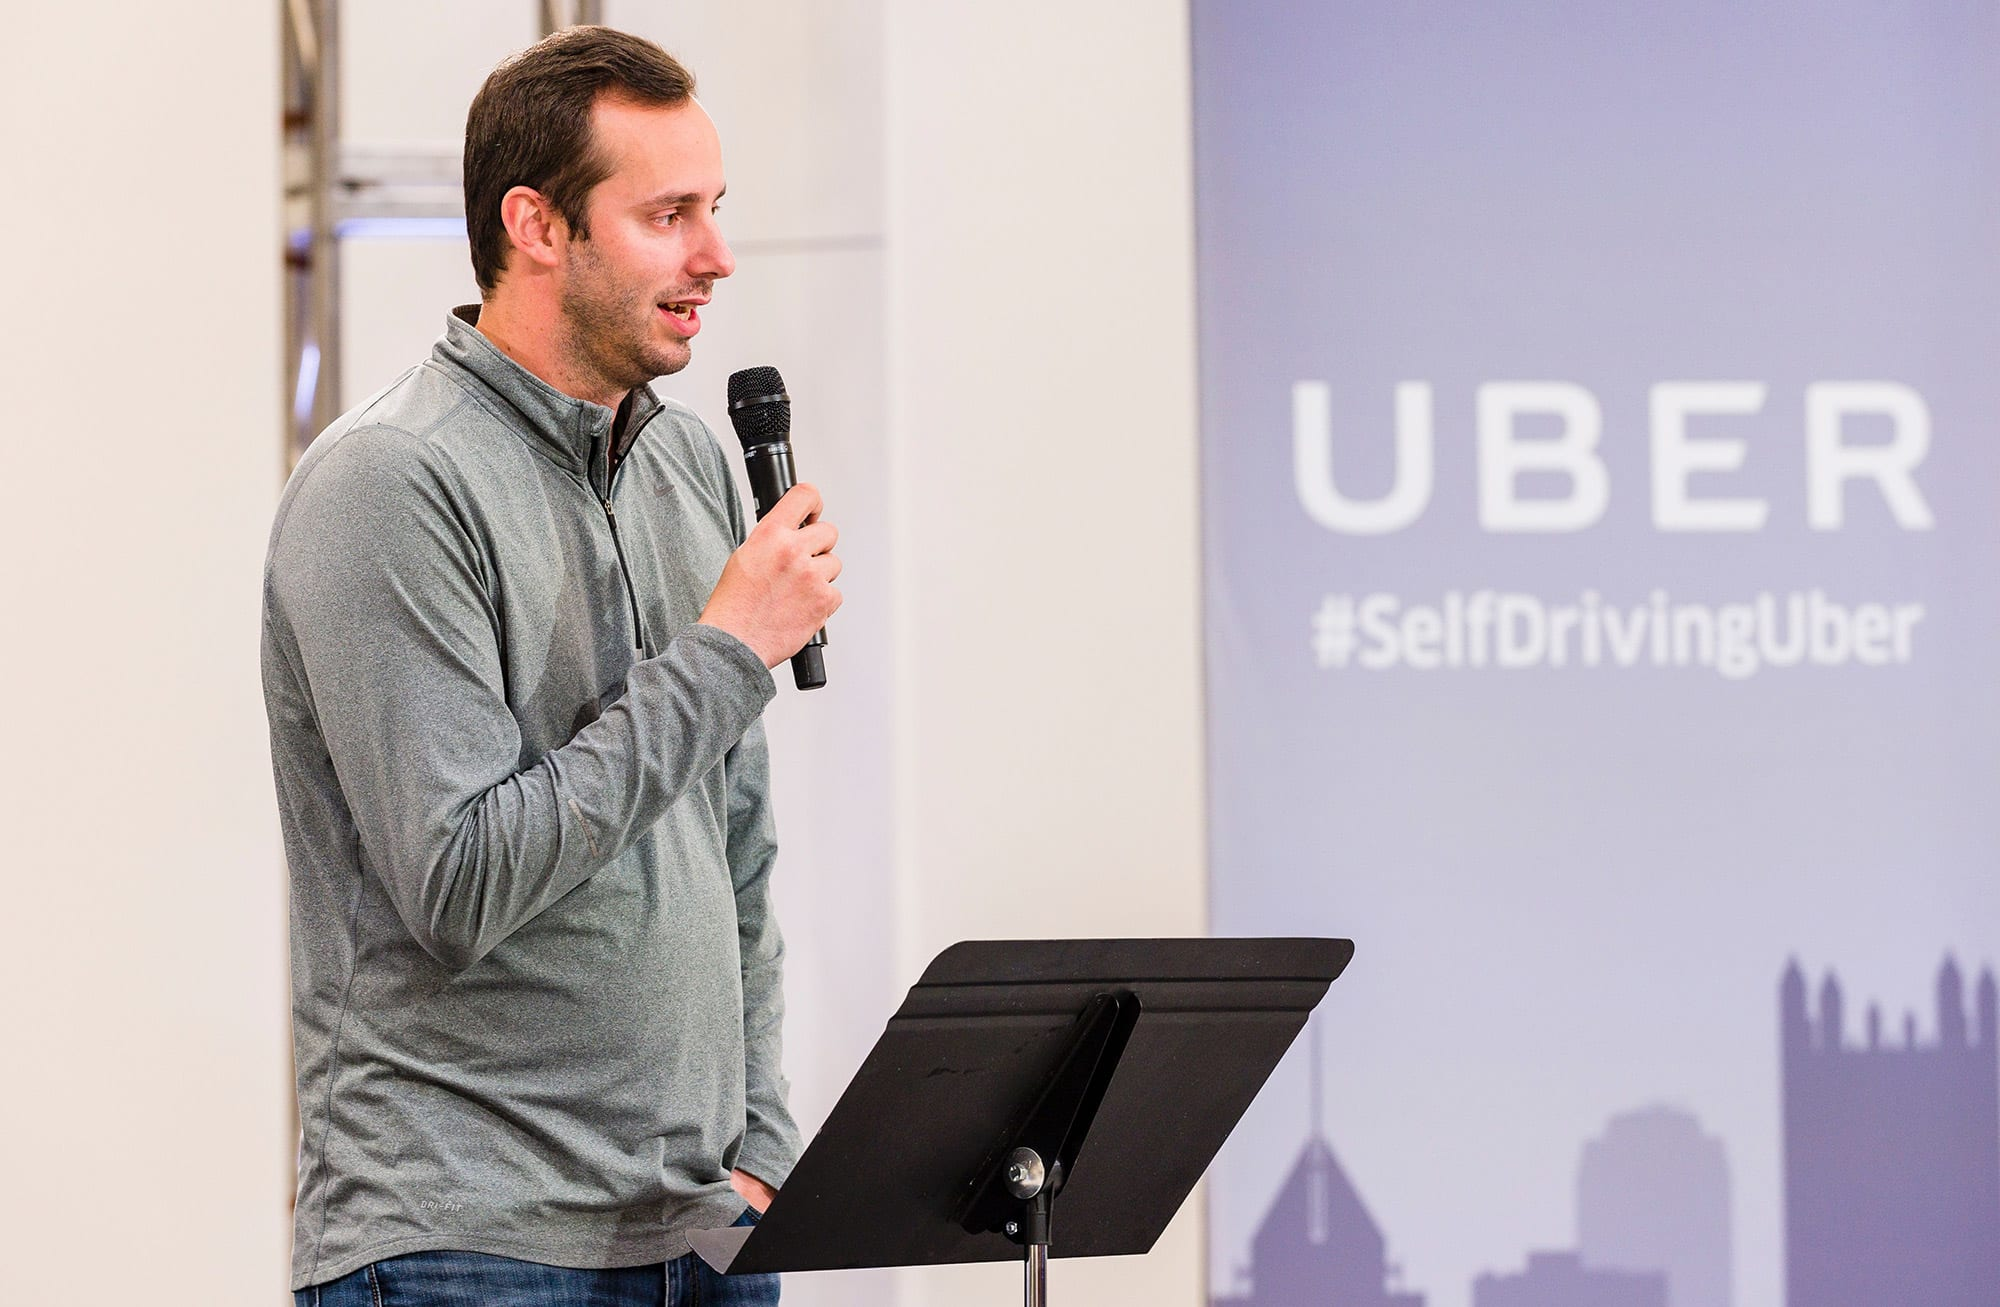 Ex-Google engineer charged with taking self-driving car trade secrets